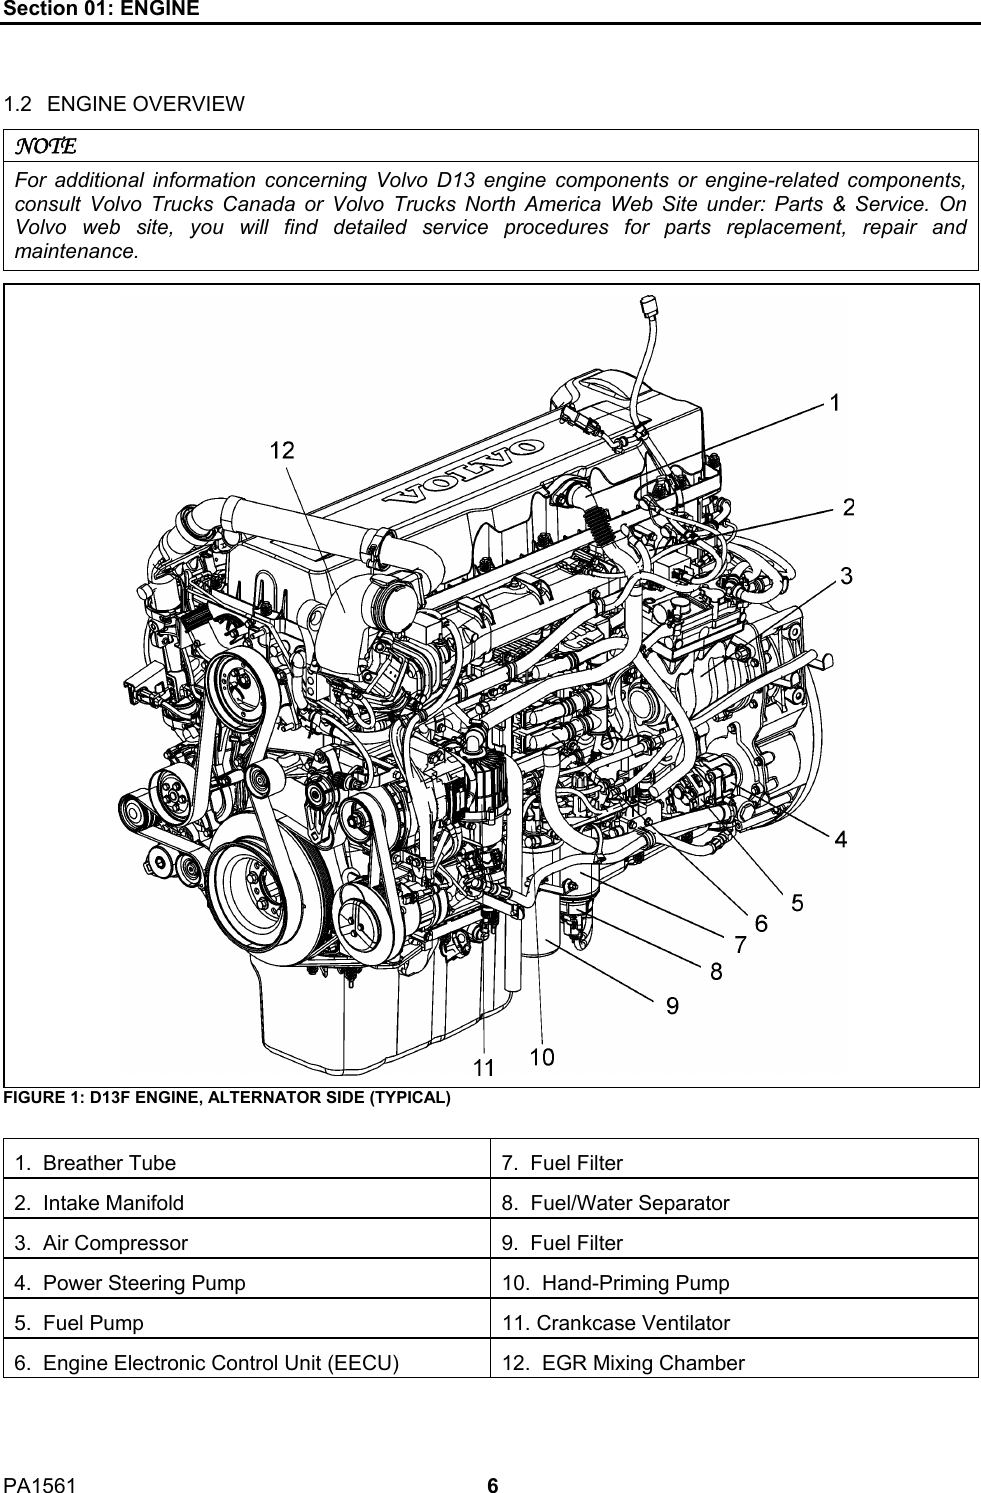 Volvo D13 Users Manual ManualsLib Makes It Easy To Find